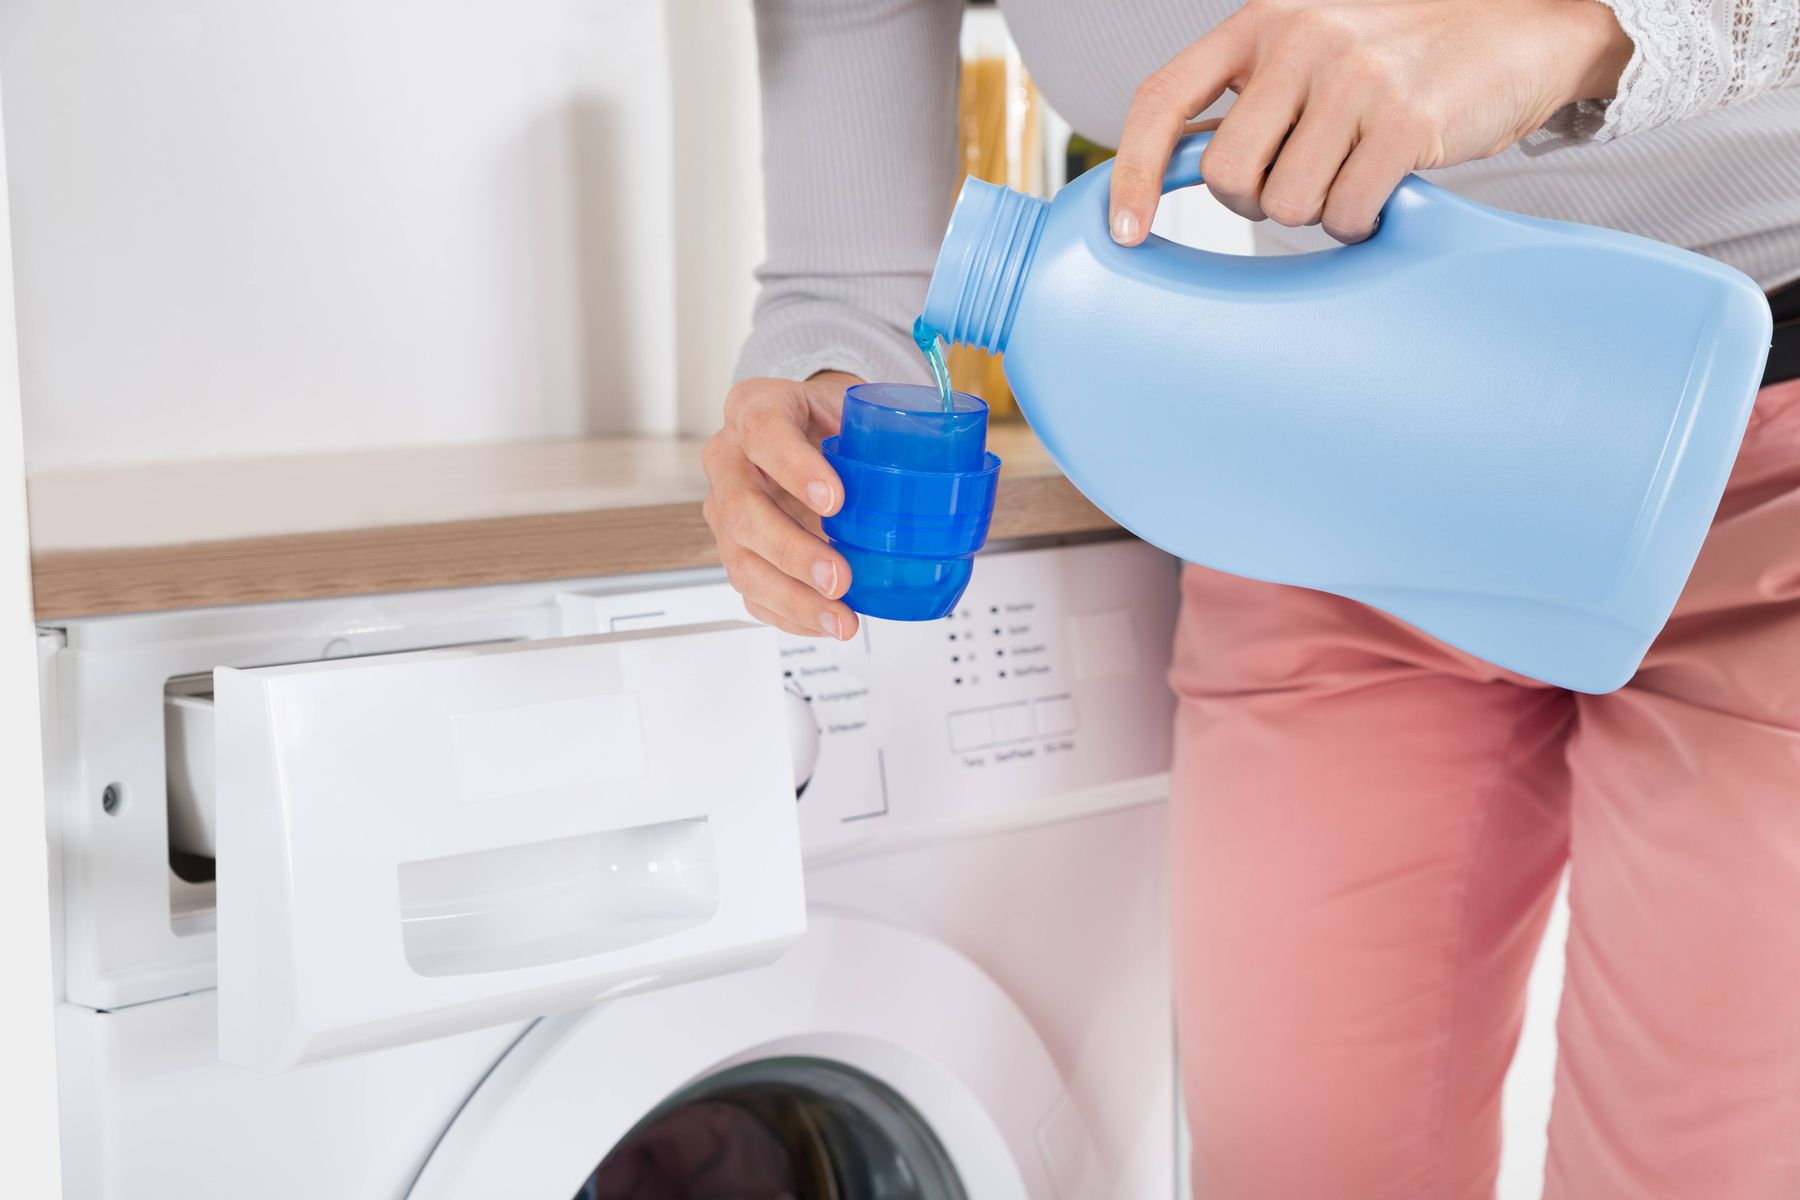 powerful laundry detergent poured by person